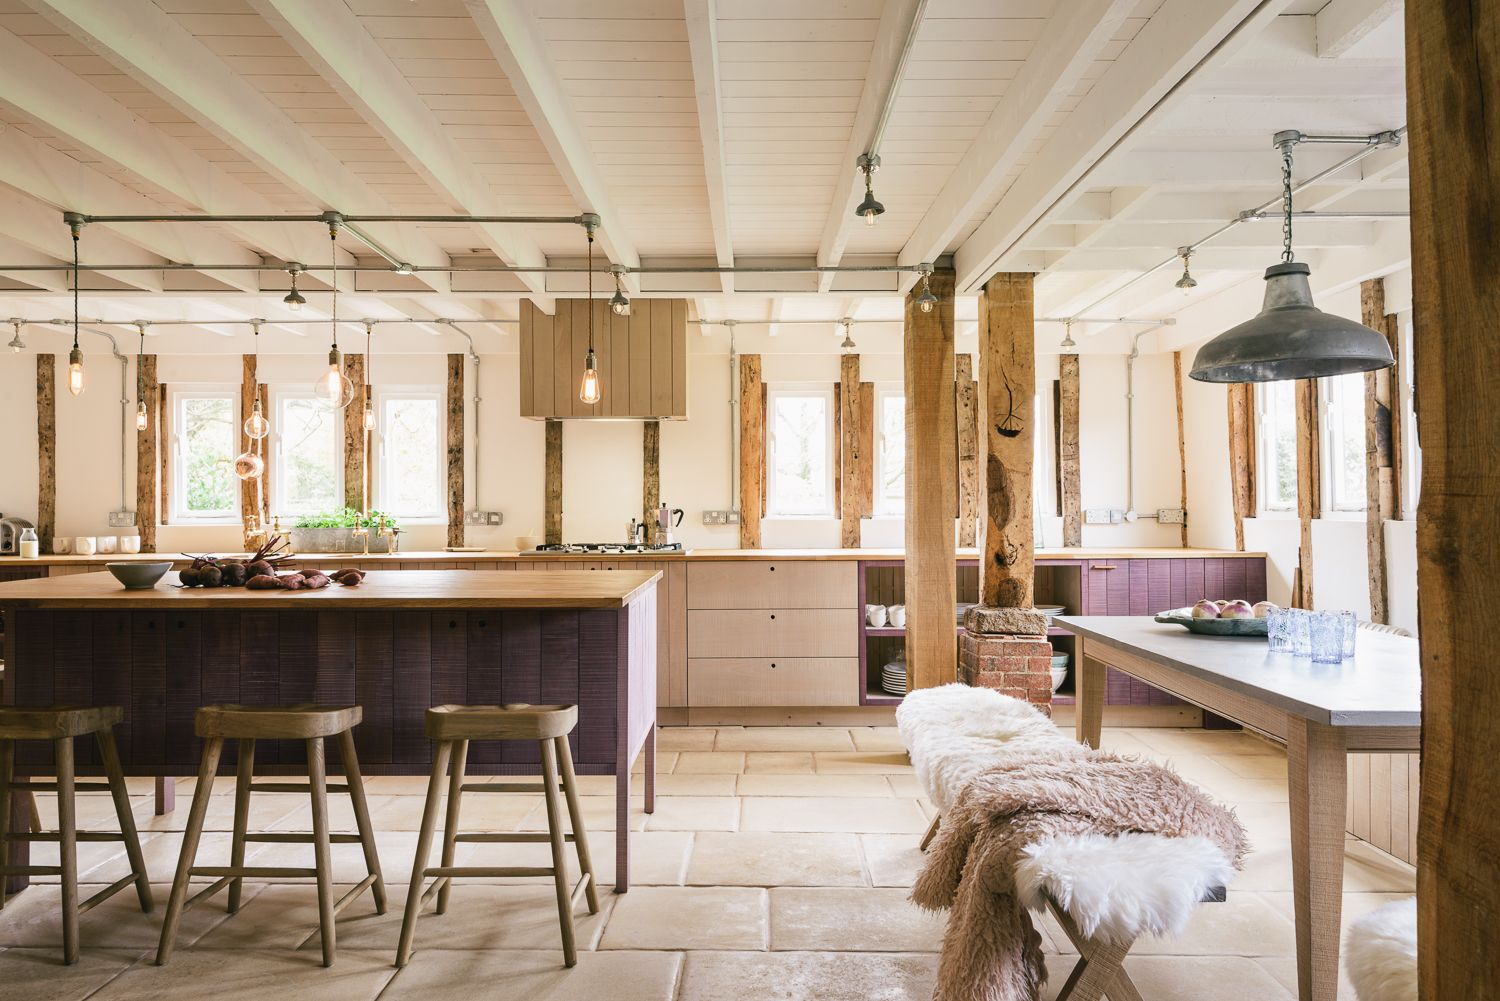 The hampshire barn kitchen by devol in lavender and natural a brand